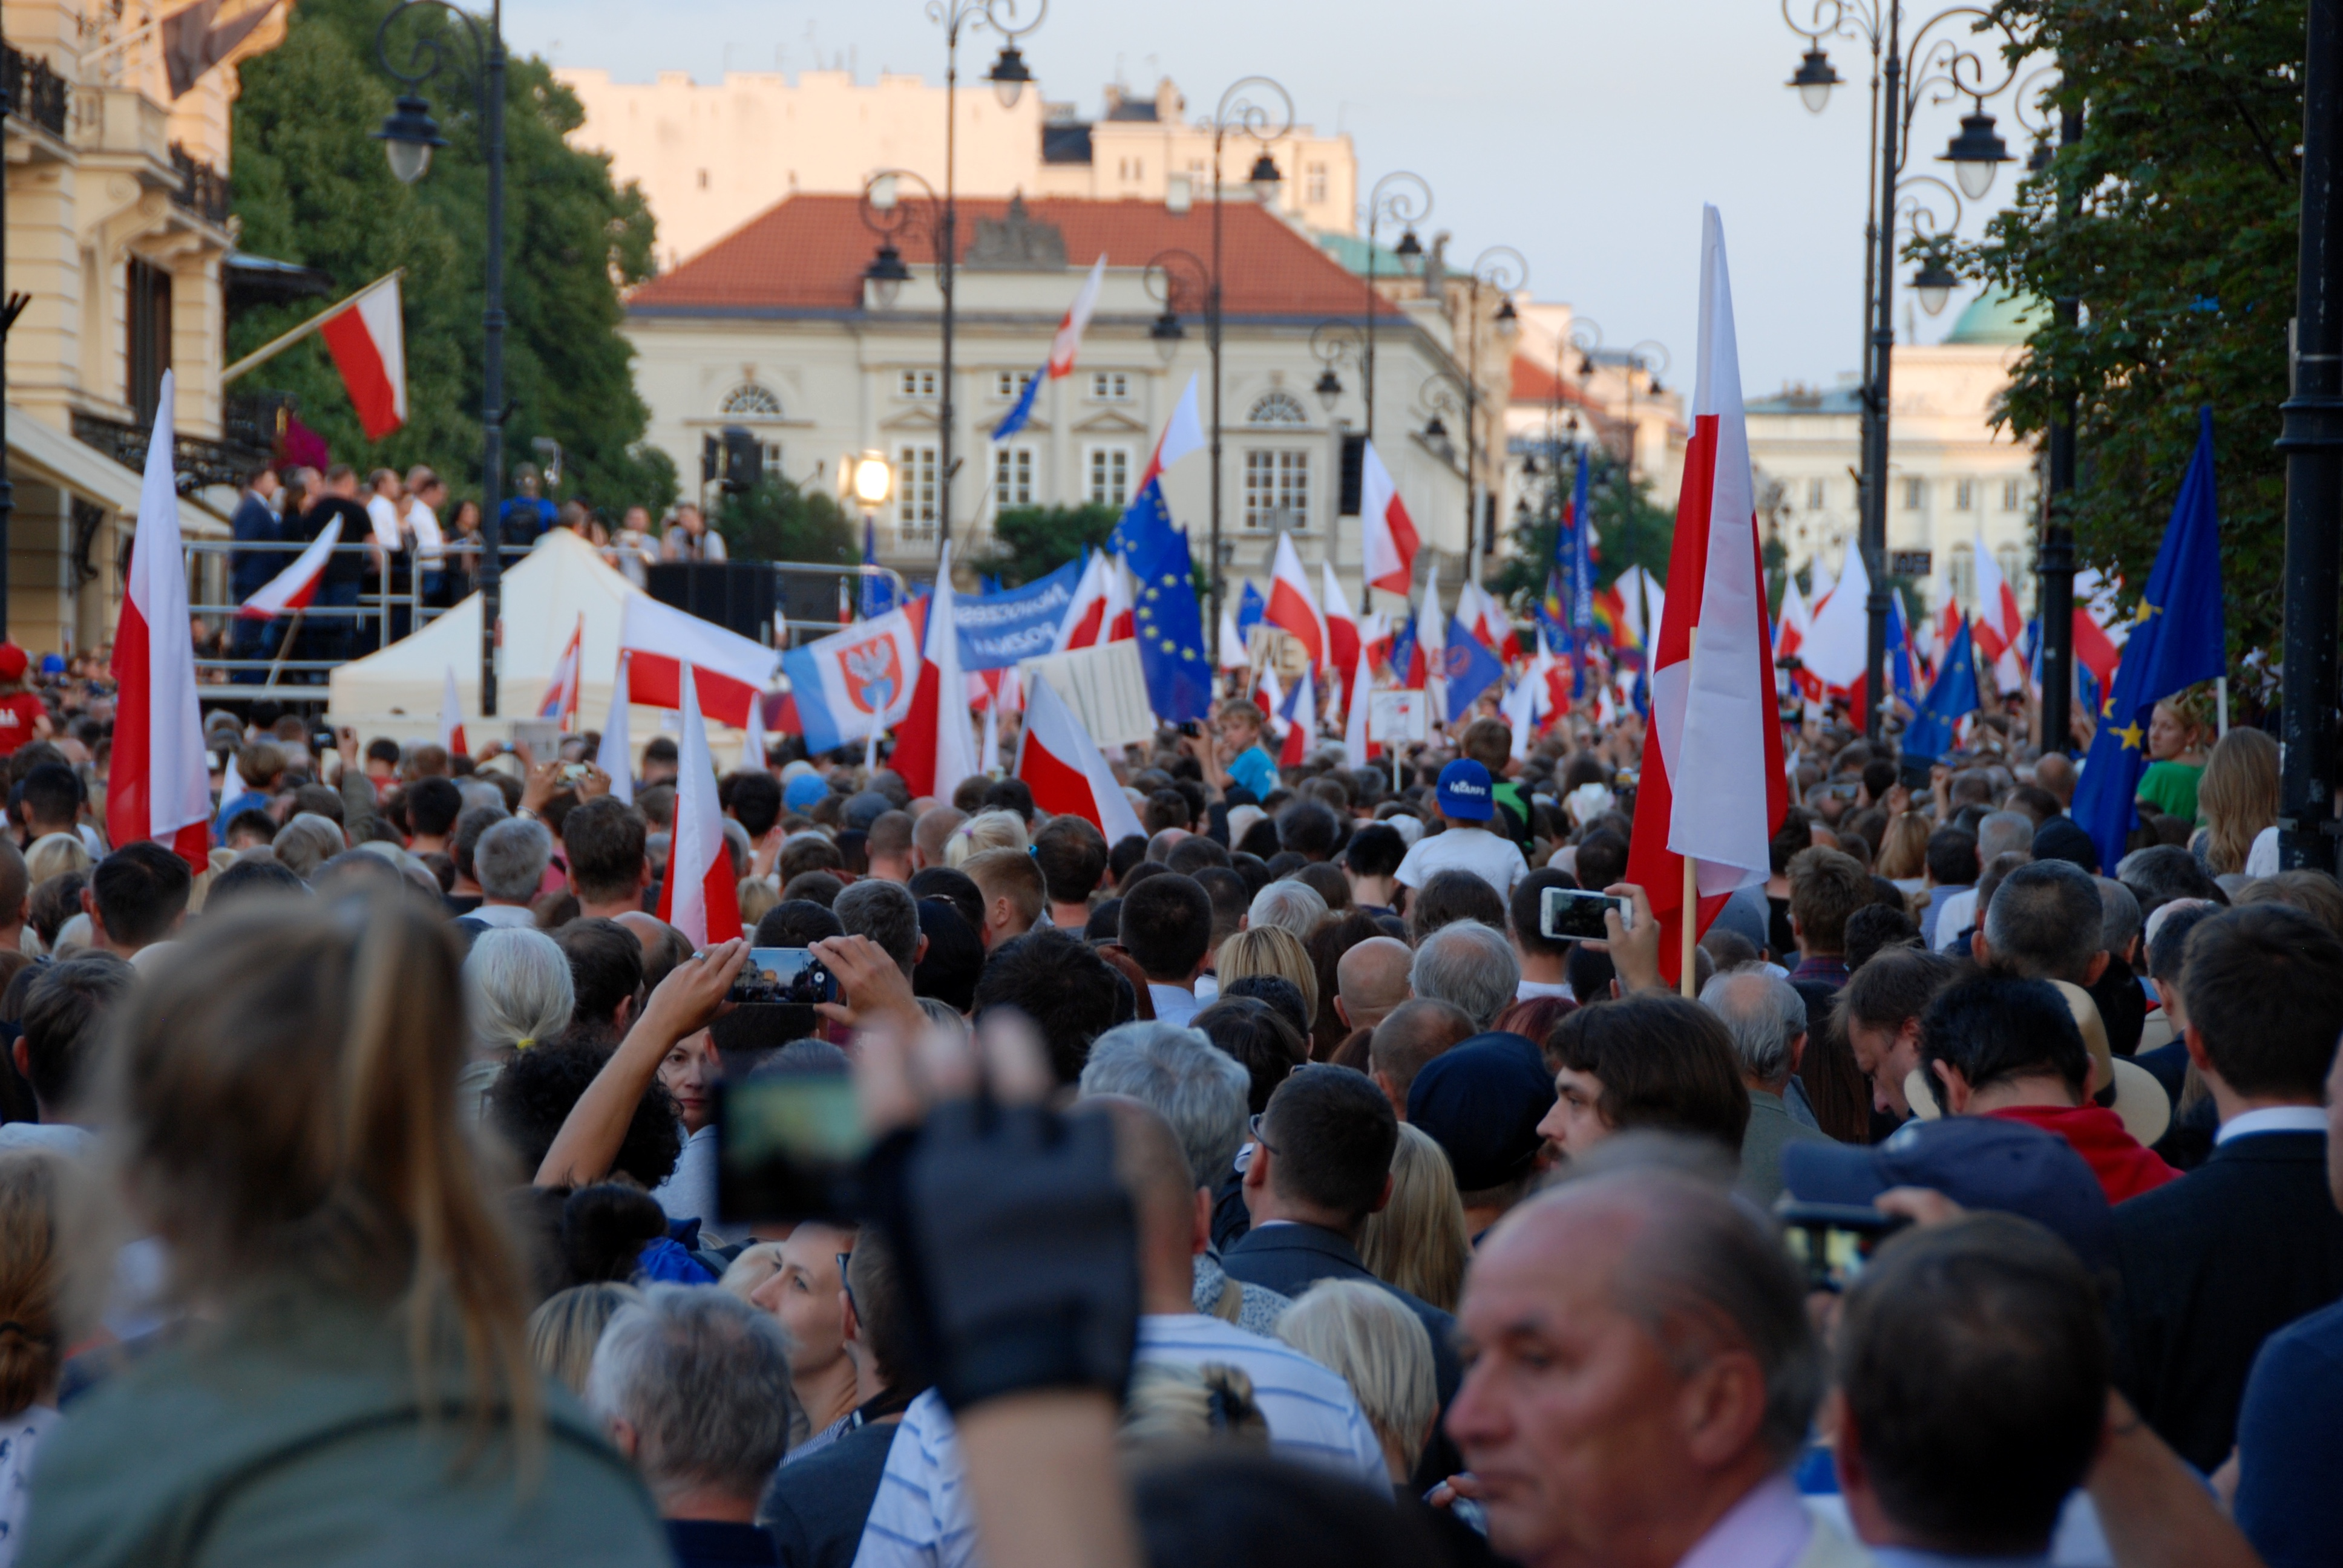 On July 20, thousands of Poles gathered in front of the Presidential Palace, Warsaw, to stop the president from signing the judicial reform. © Natalia Koper